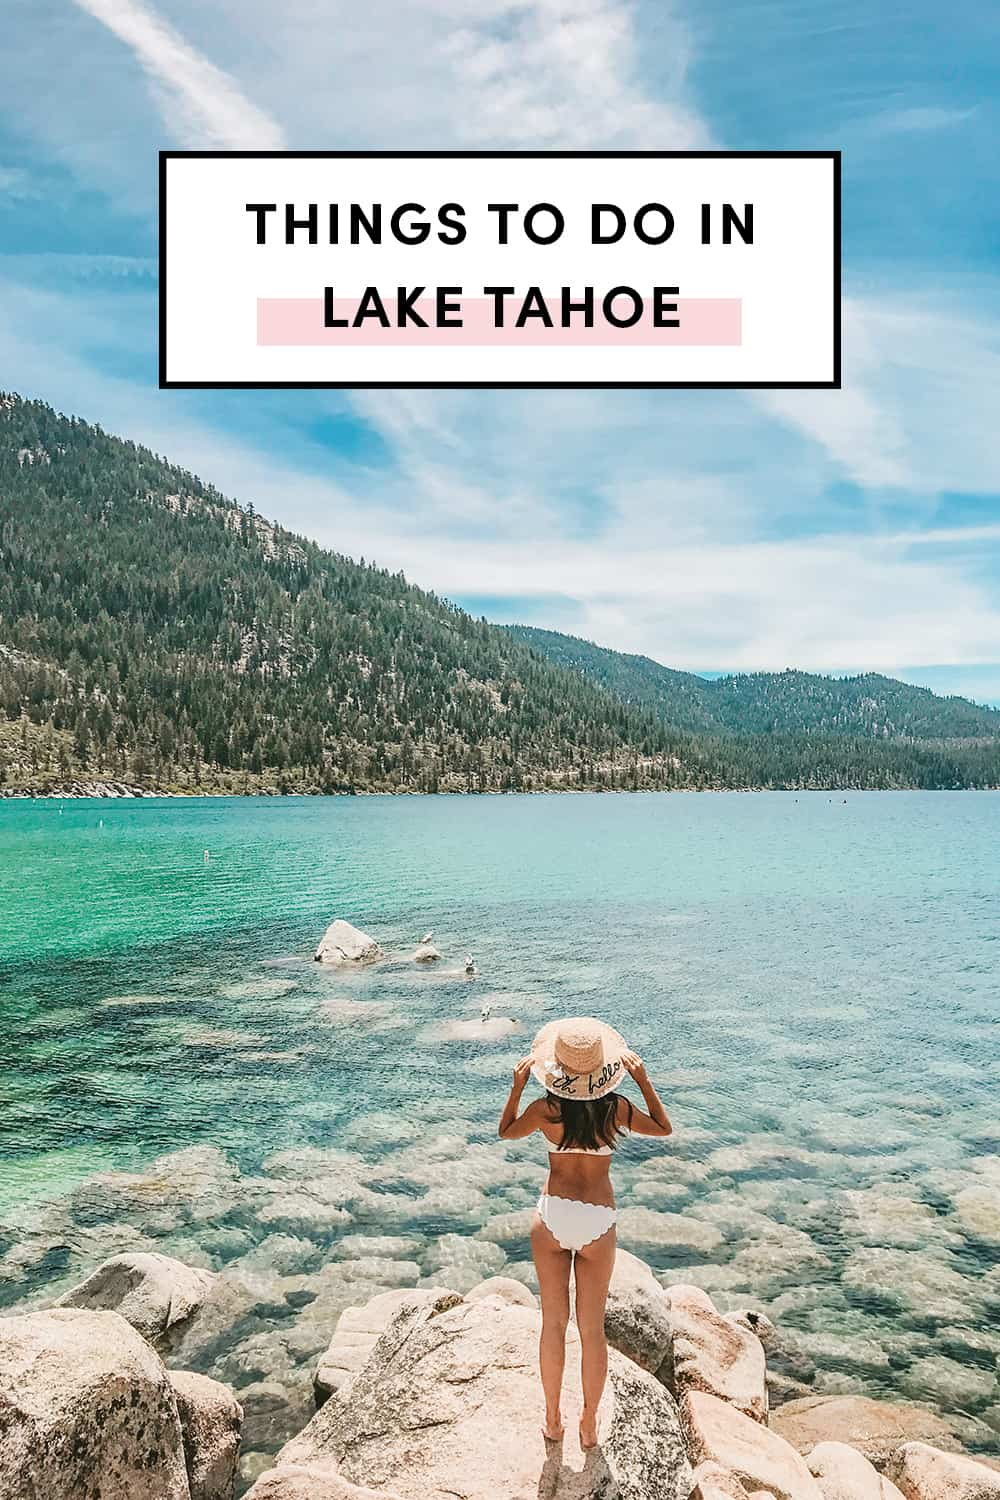 Things To Do In Lake Tahoe